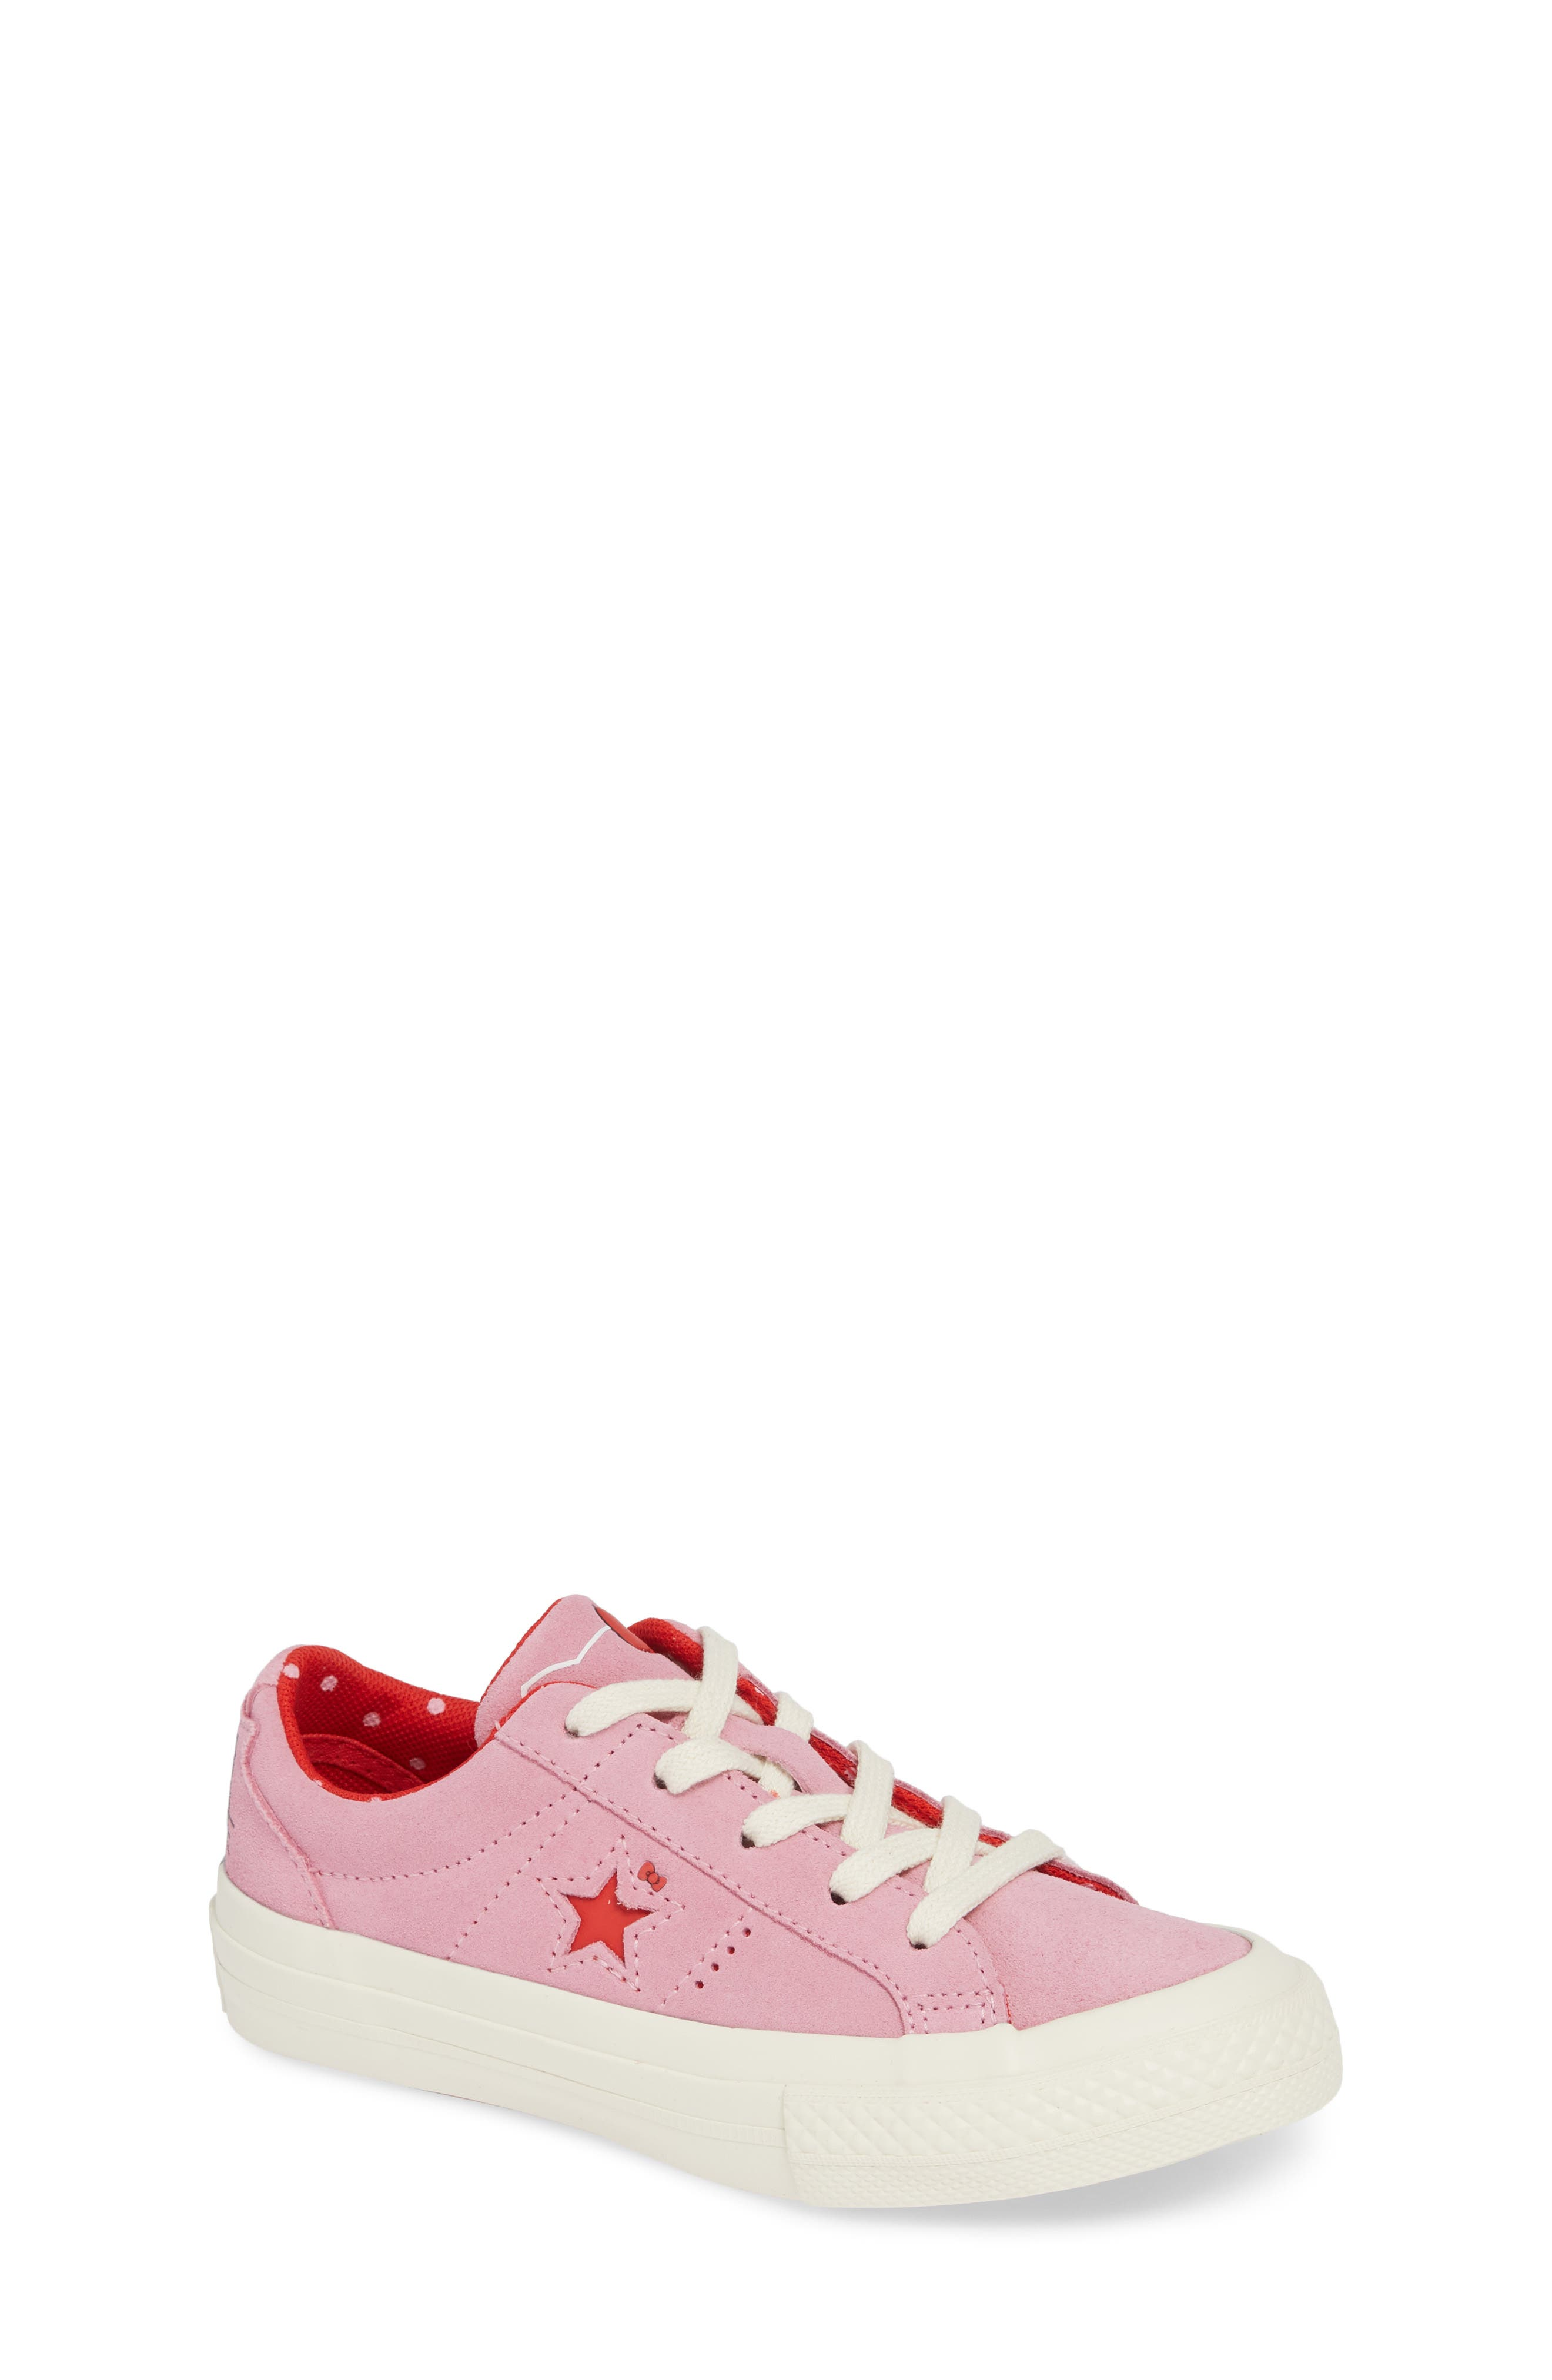 One Star Hello Kitty<sup>®</sup> Sneaker,                         Main,                         color, PINK PRISM